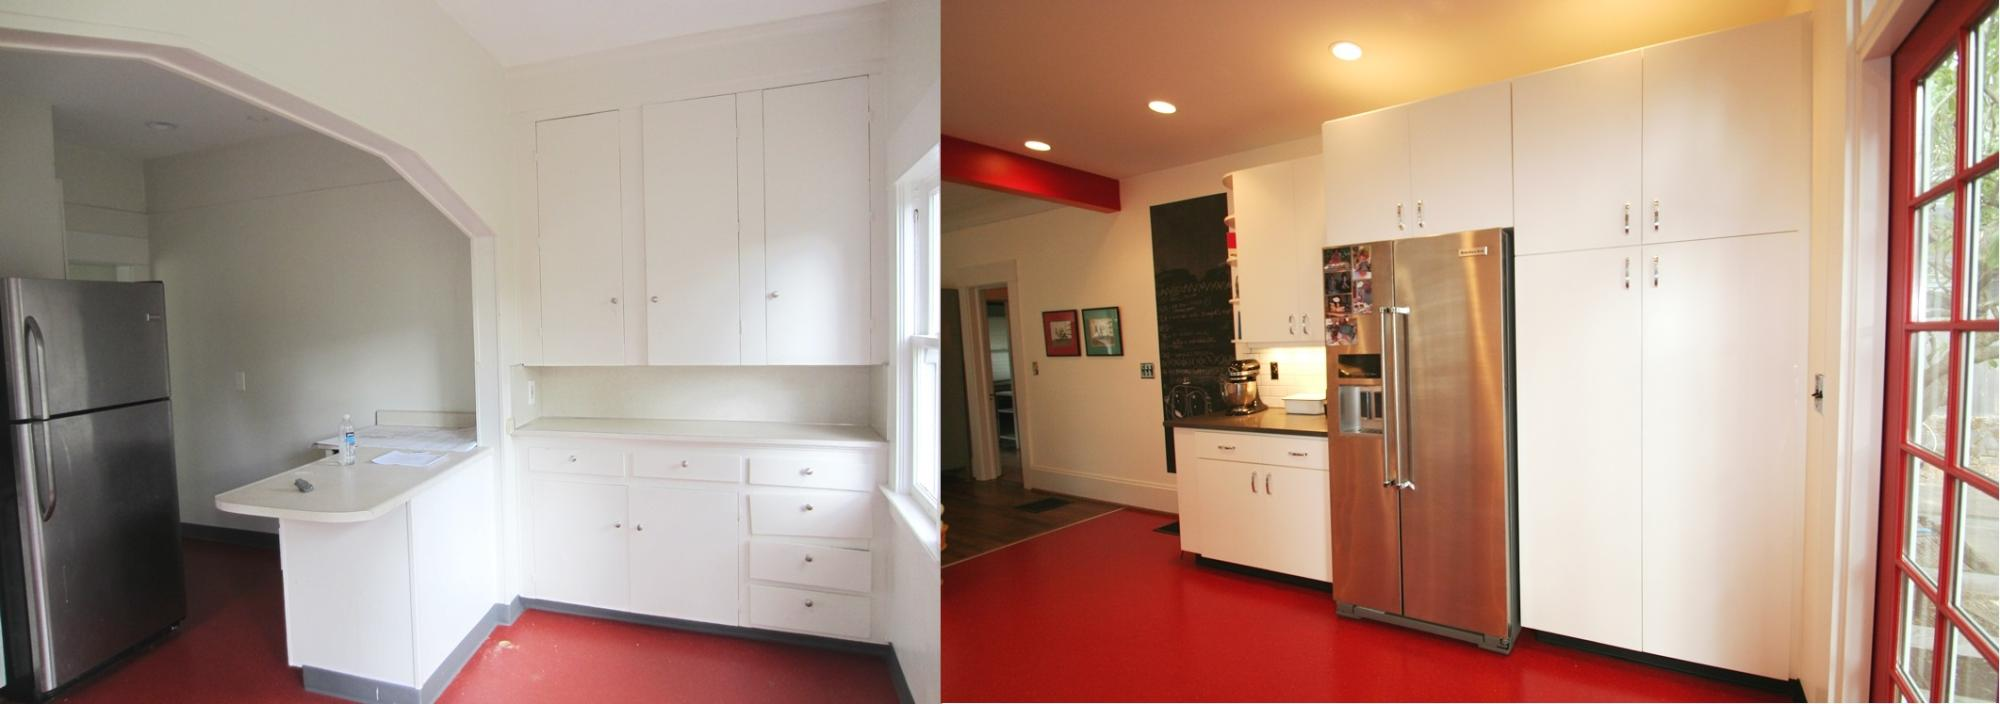 before___after_kitchen_7.jpg